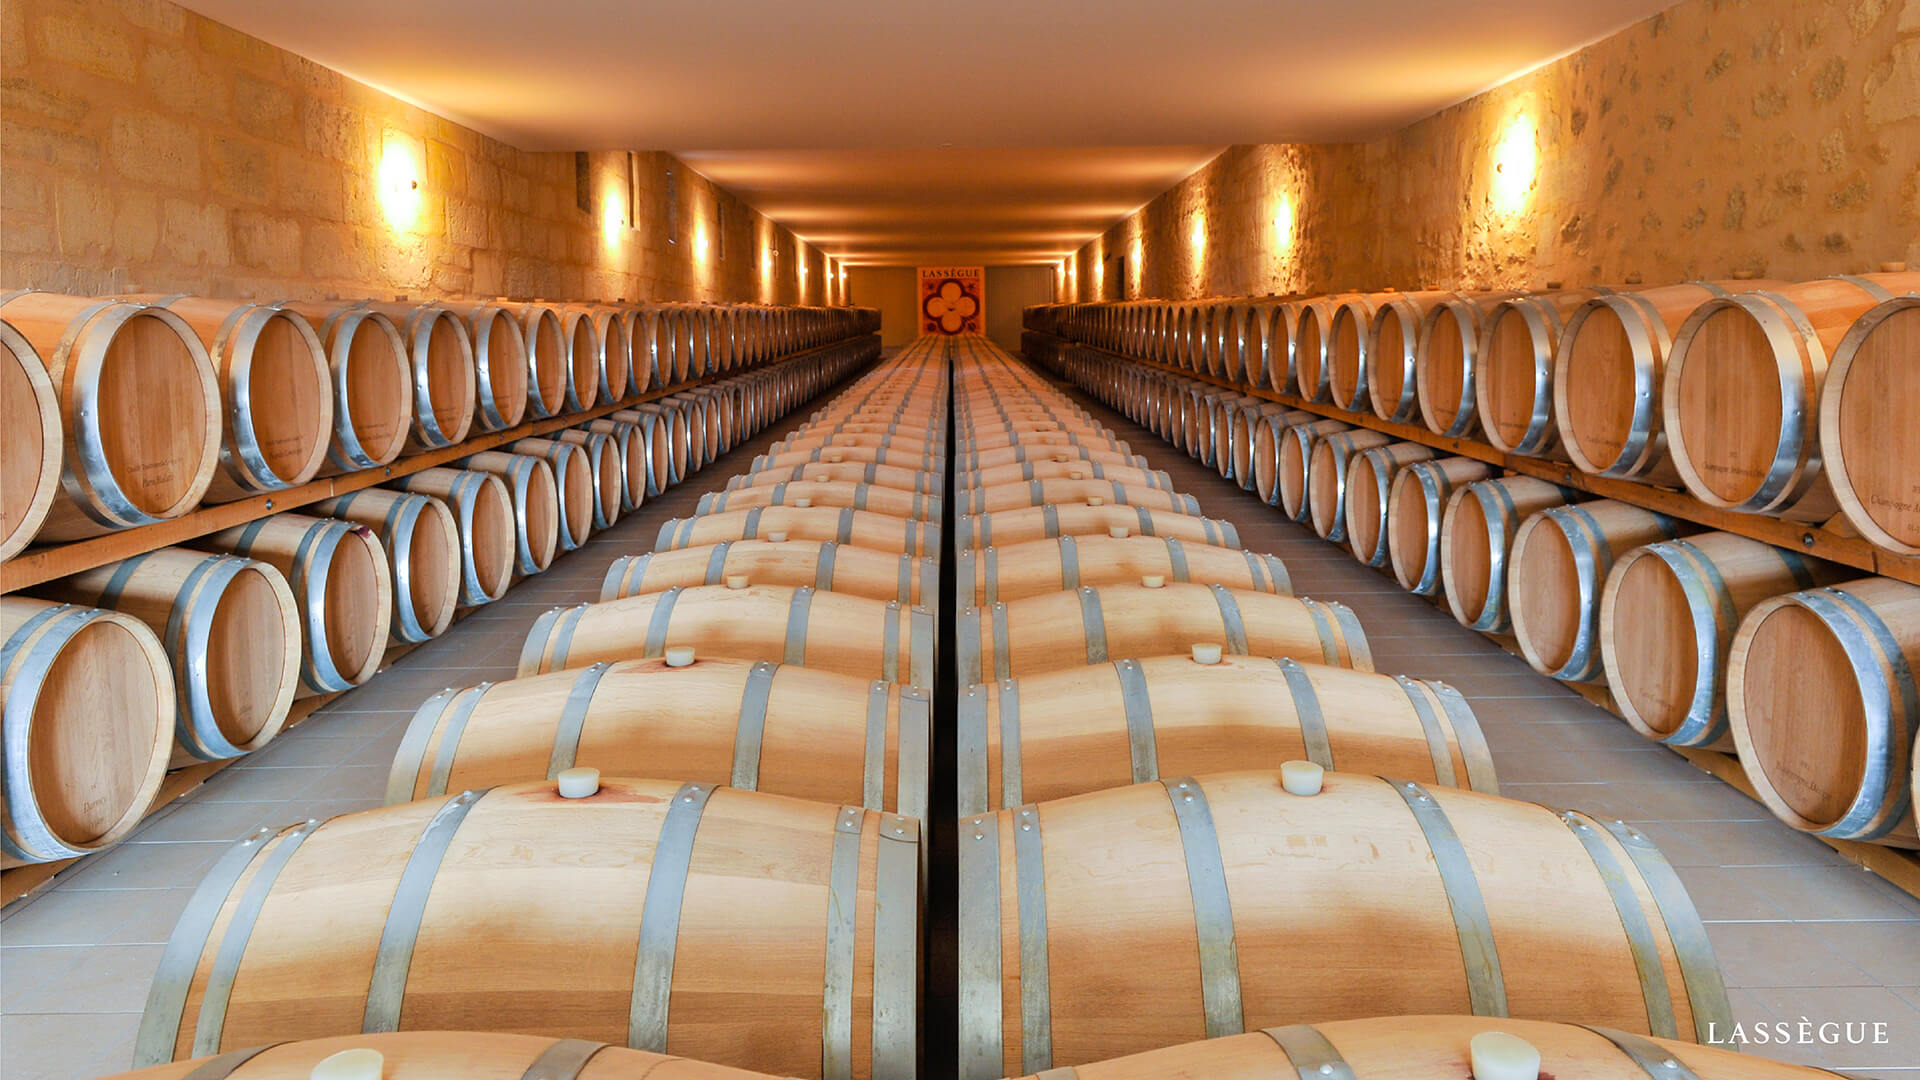 Image of Chateau Lassegue Barrel Room